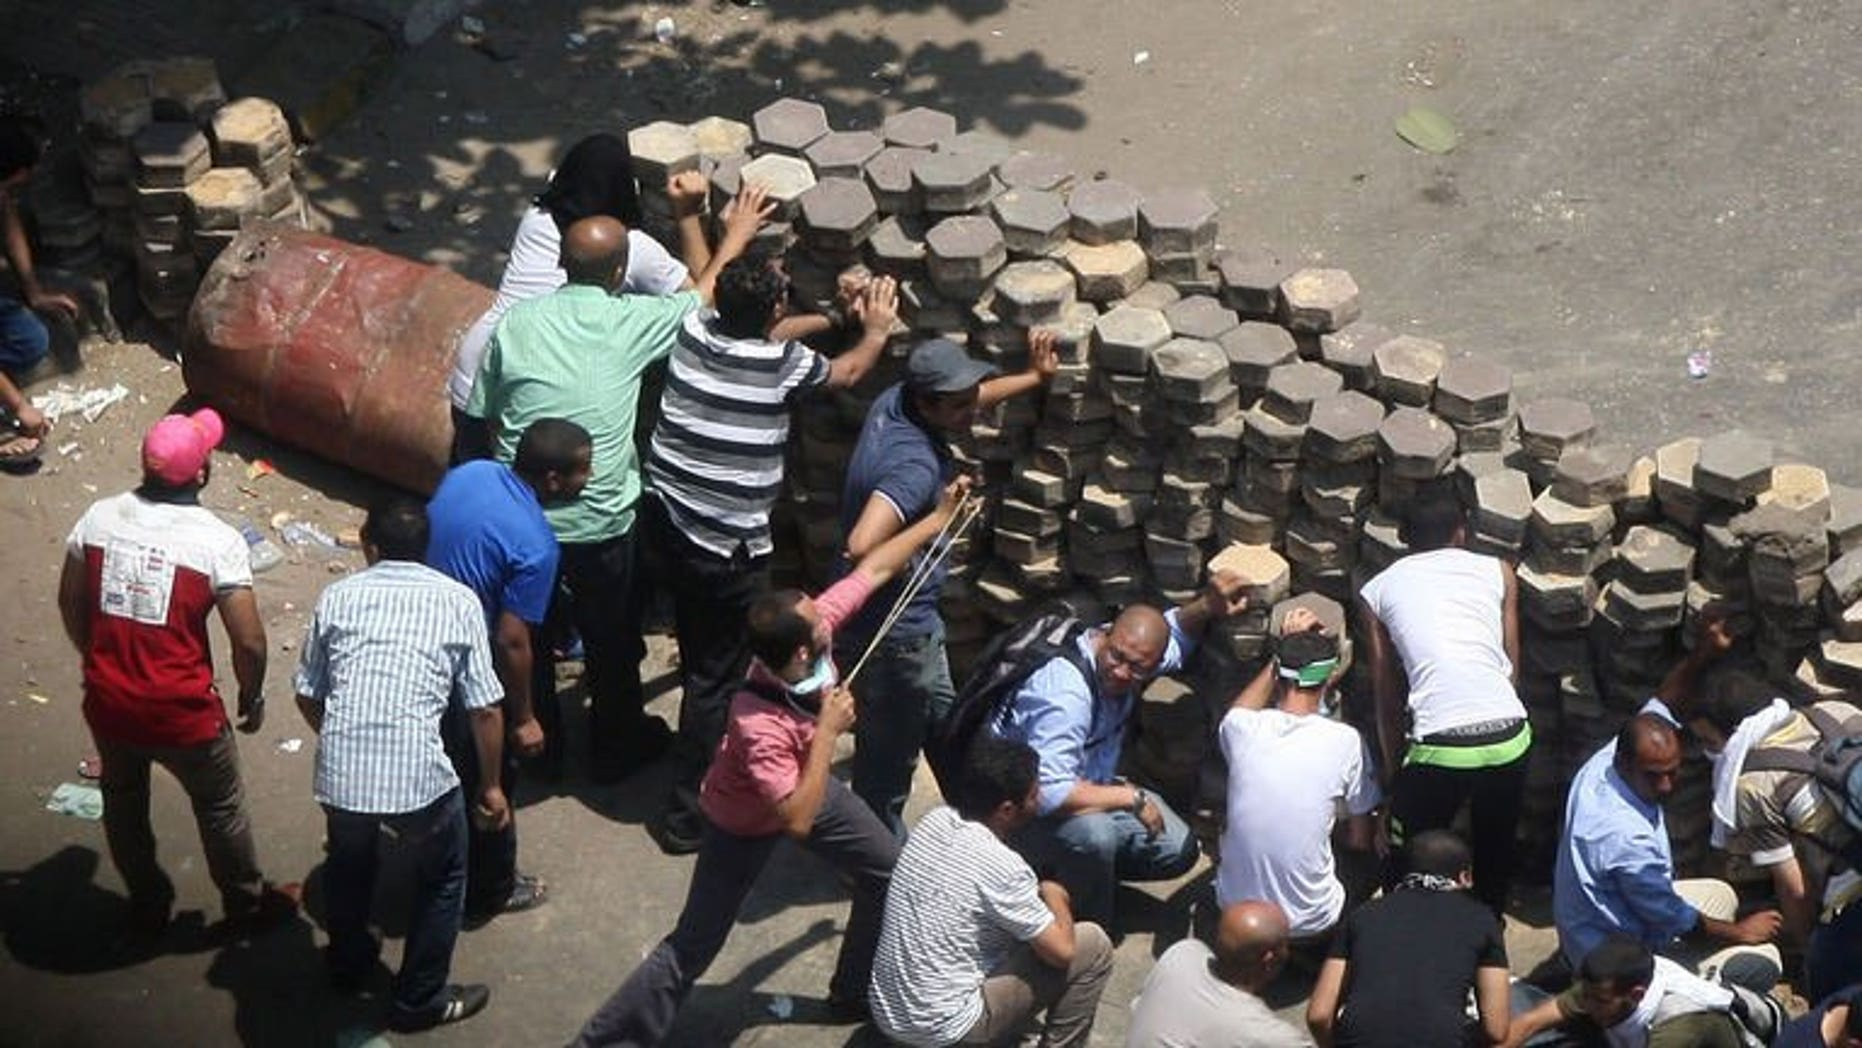 Egyptian supporters of ousted president Mohamed Morsi confront riot police at Mustafa Mahmoud Square in Cairo, on August 14, 2013. Egypt's government has declared a curfew in Cairo and 10 other provinces in a bid to contain nationwide violence following a crackdown on Morsi's supporters.